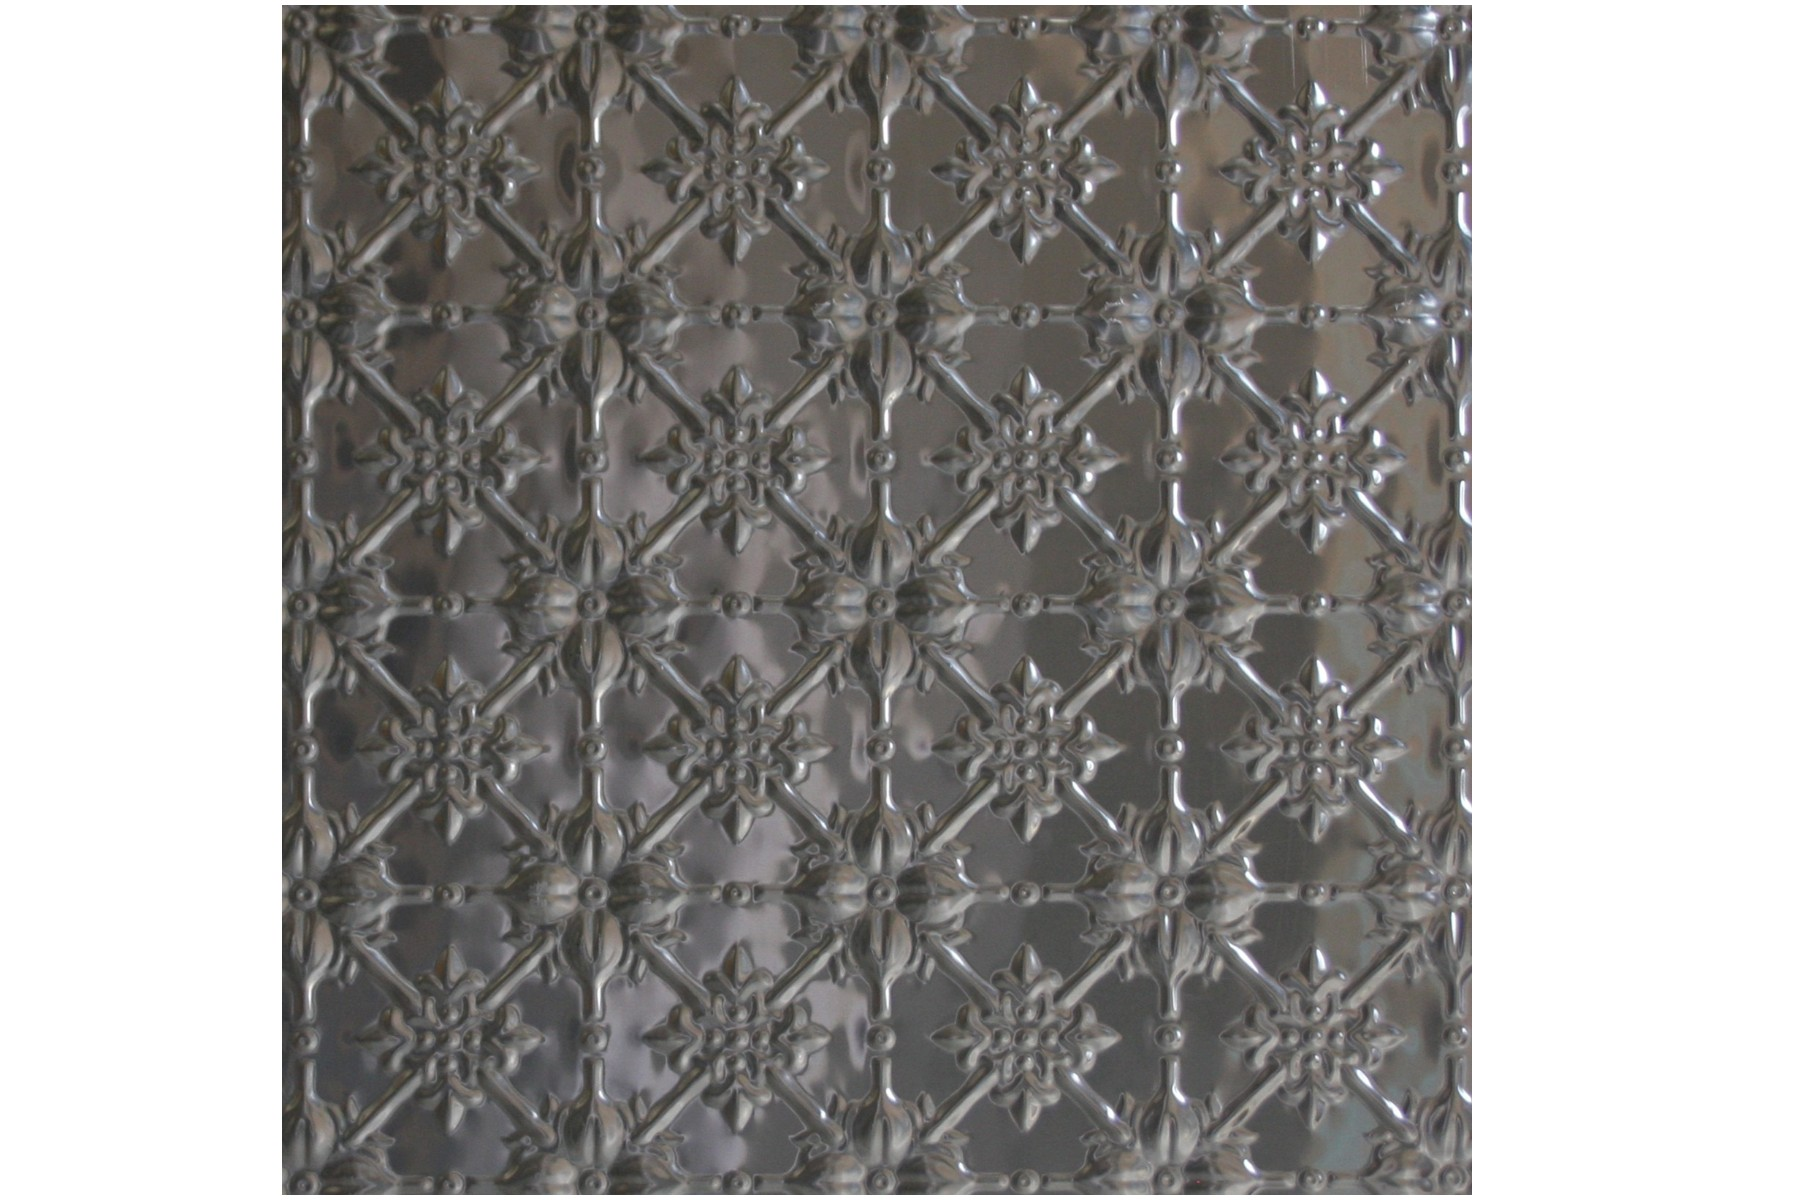 pressed tin panels are - photo #25